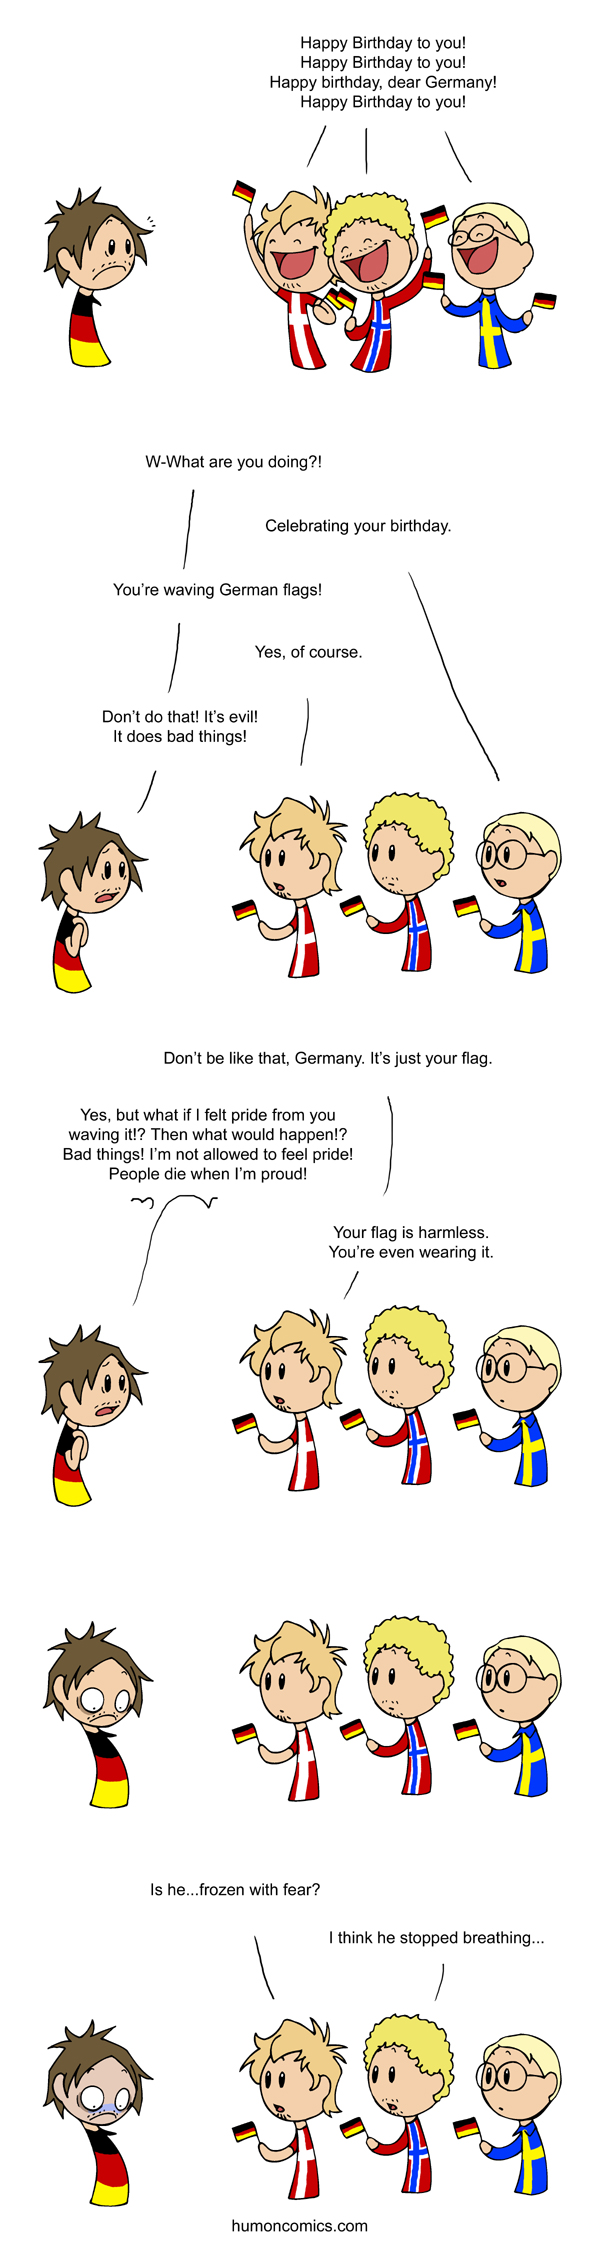 Evil Flag satwcomic.com